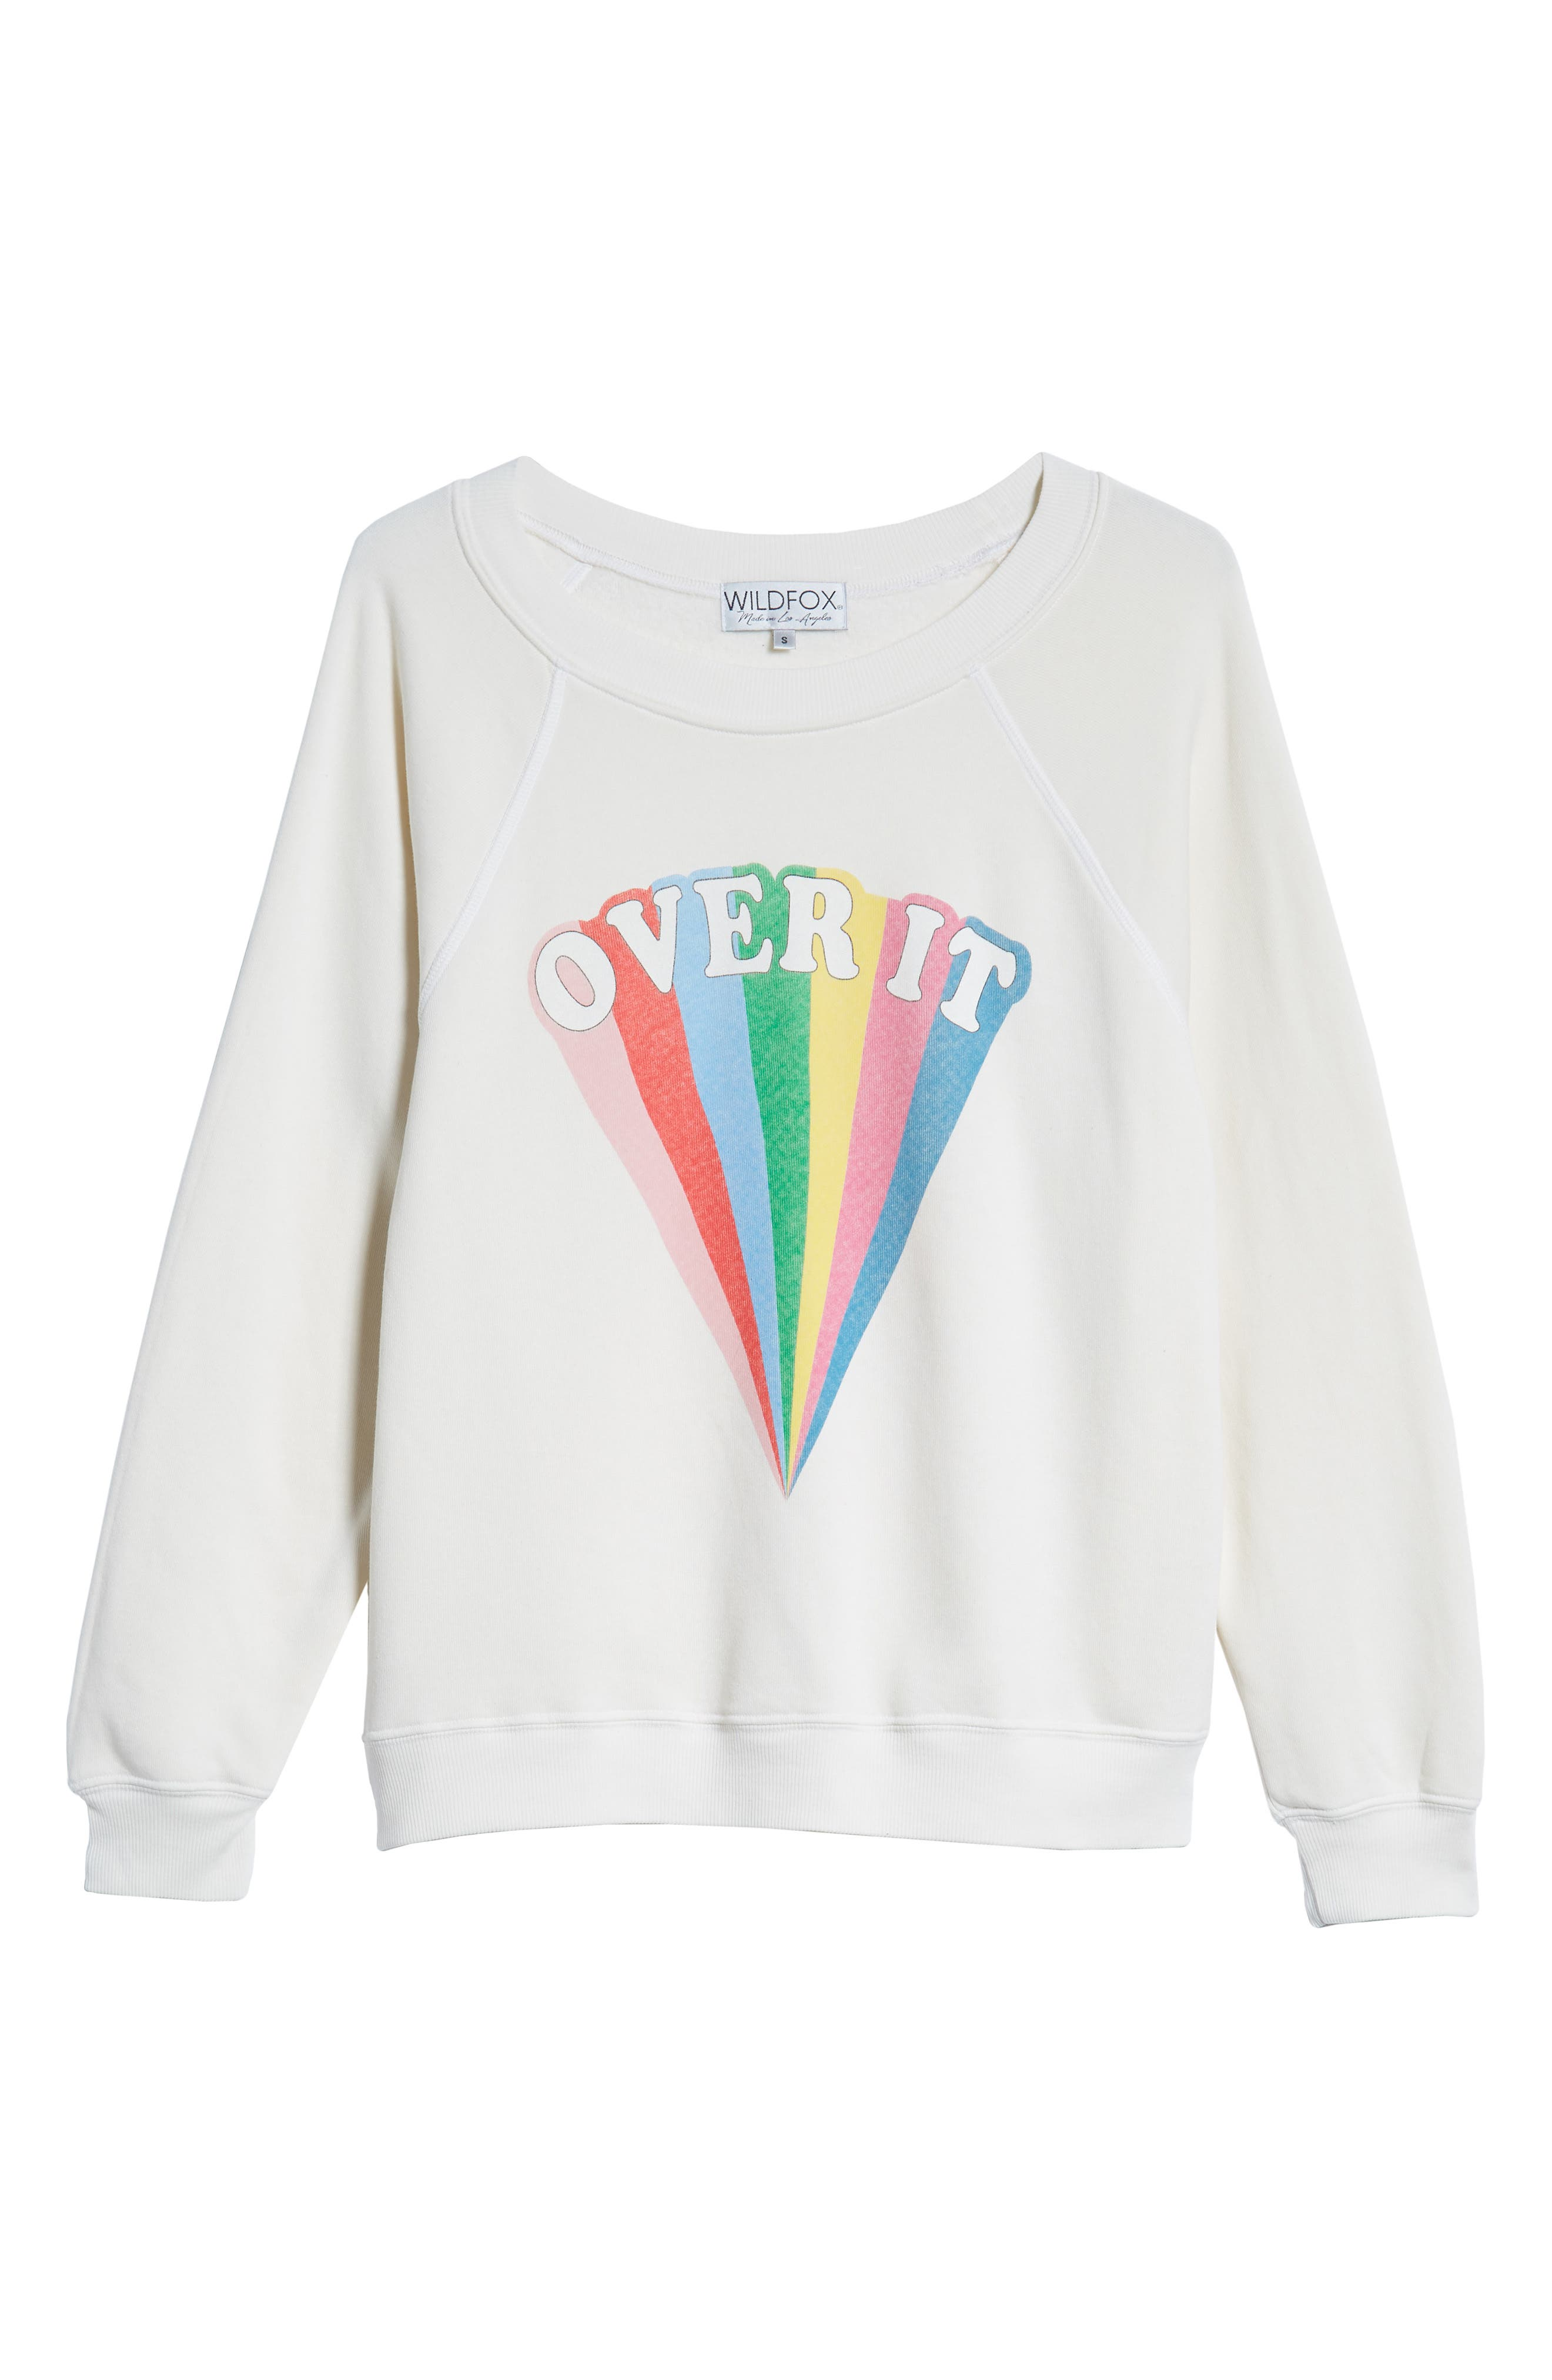 Sommers - Over It Sweatshirt,                             Alternate thumbnail 6, color,                             101